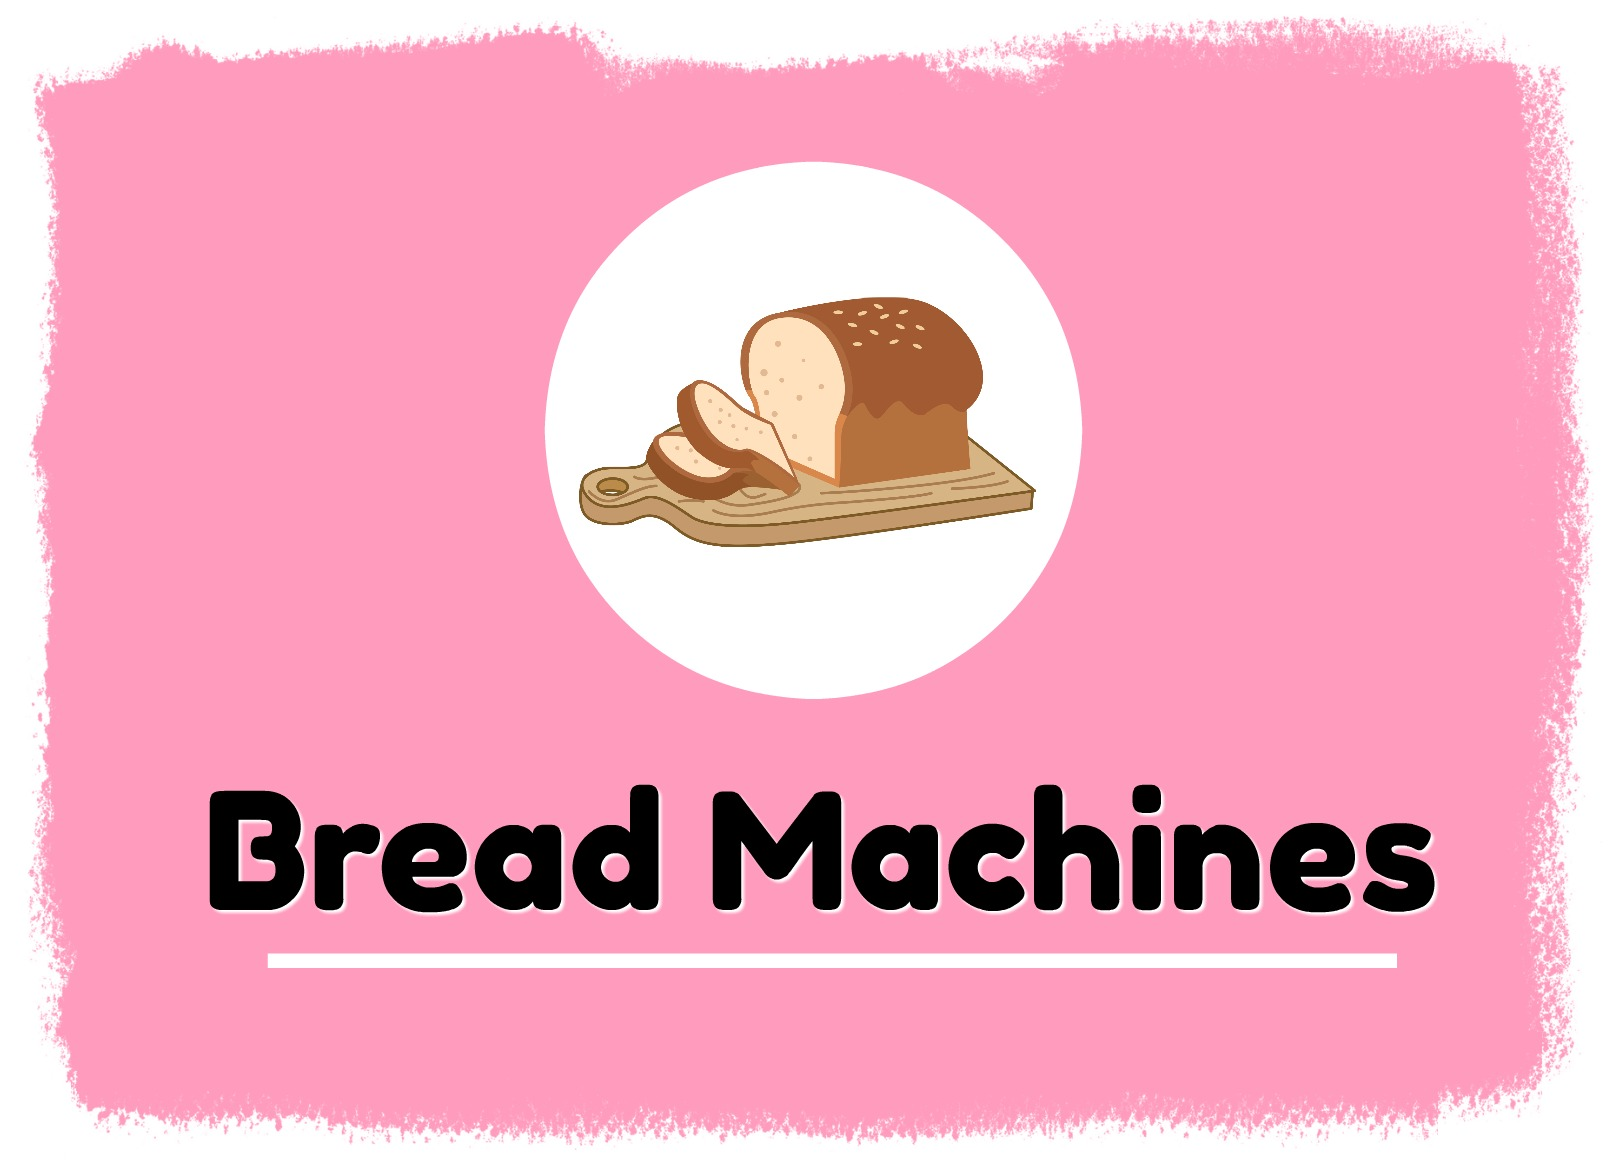 bread machine maker